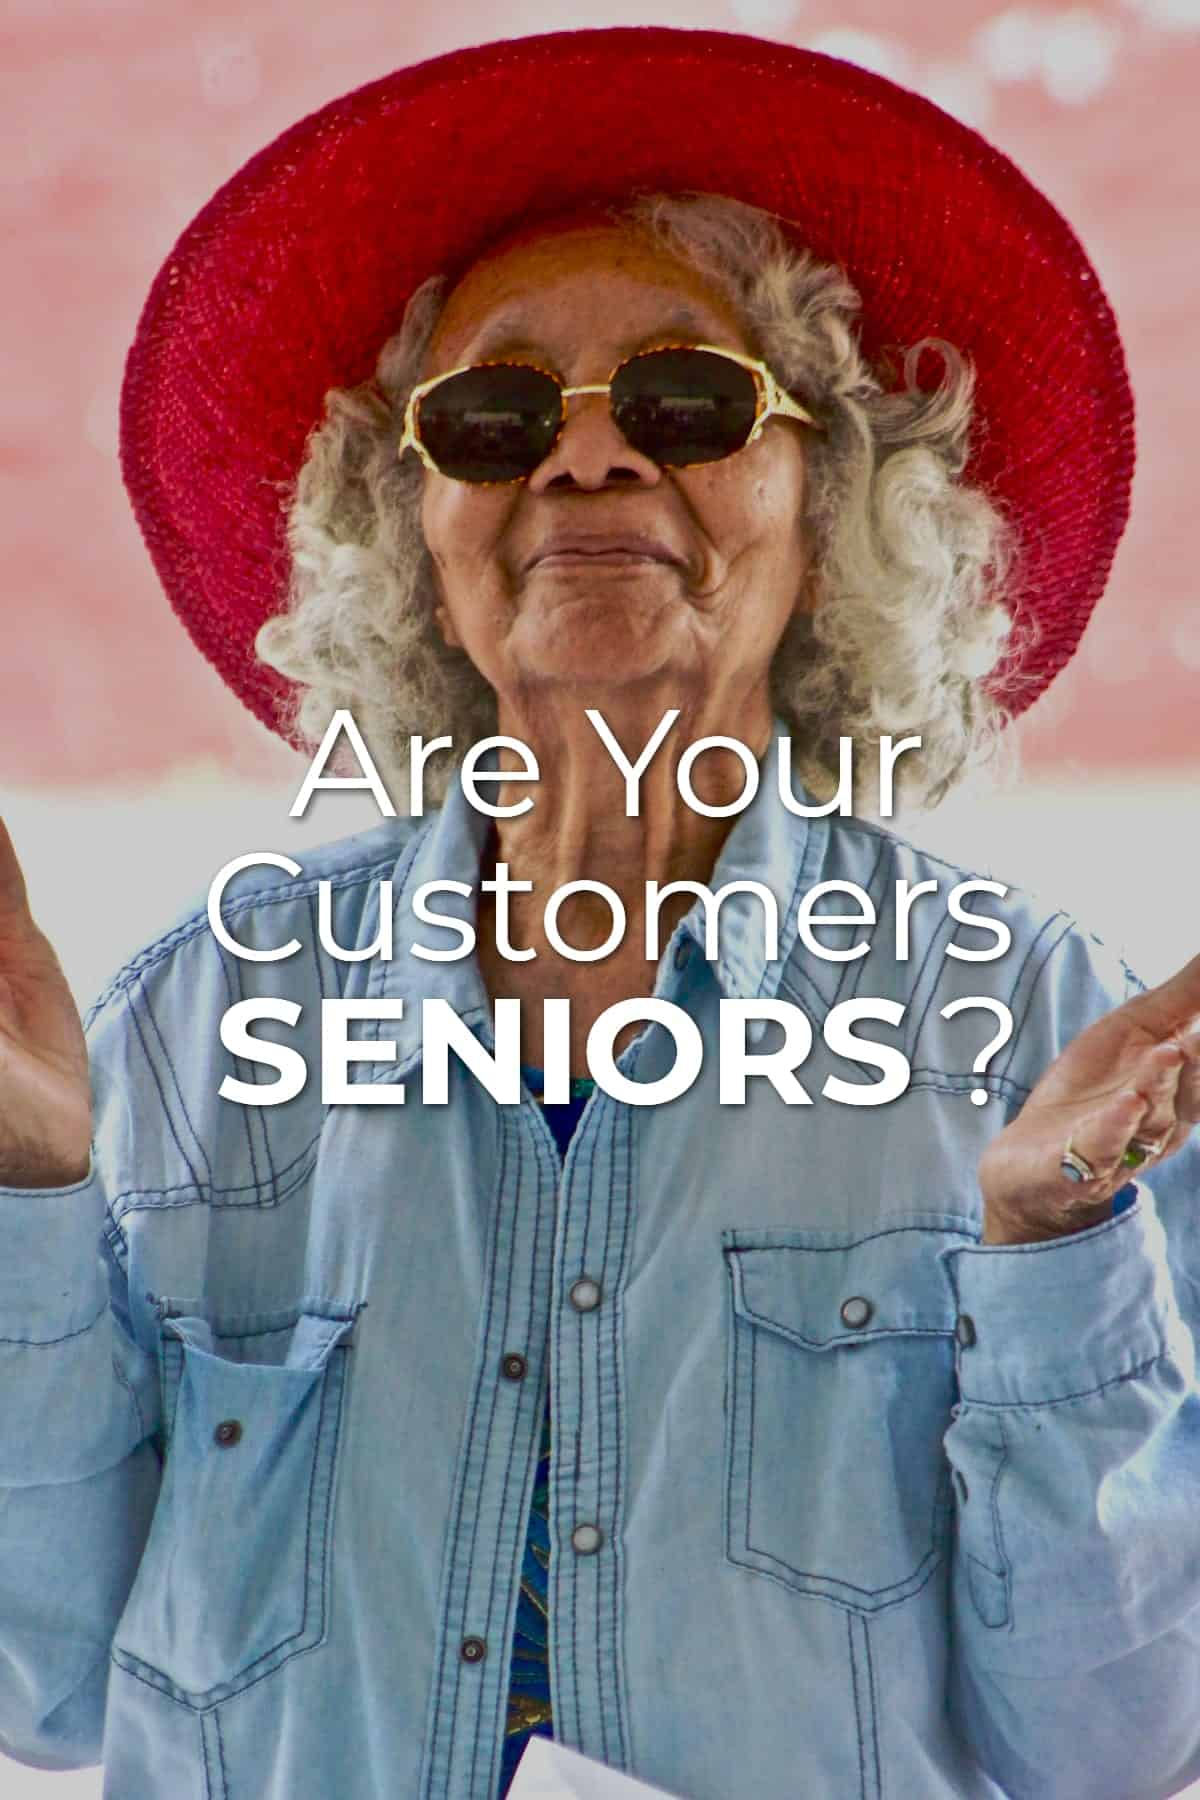 If your customers are seniors or over 65, you might take a look at the world through their eyes to find out what they need and want. via @scopedesign